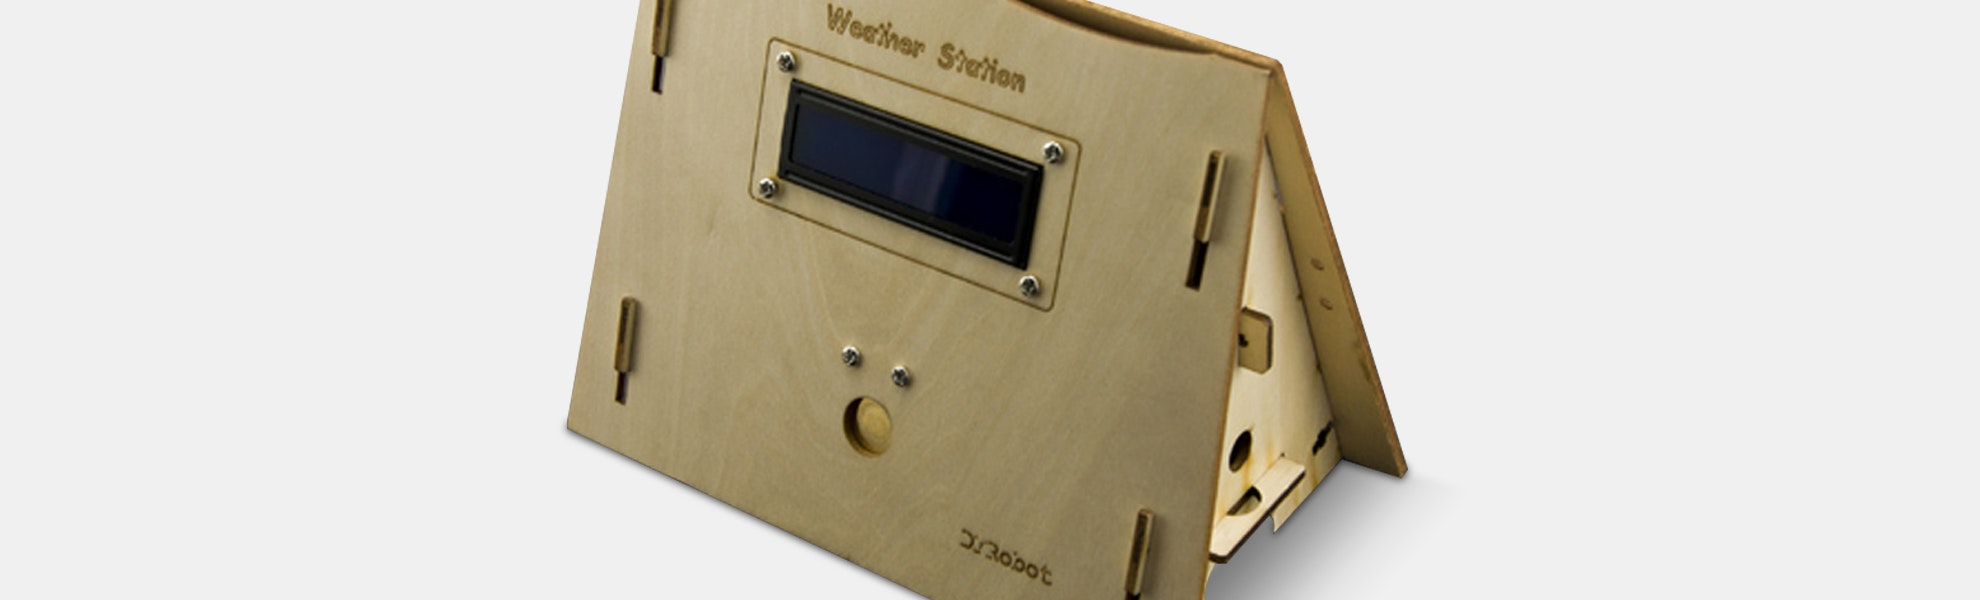 DFRobot Weather Station Kit With Solar Panel